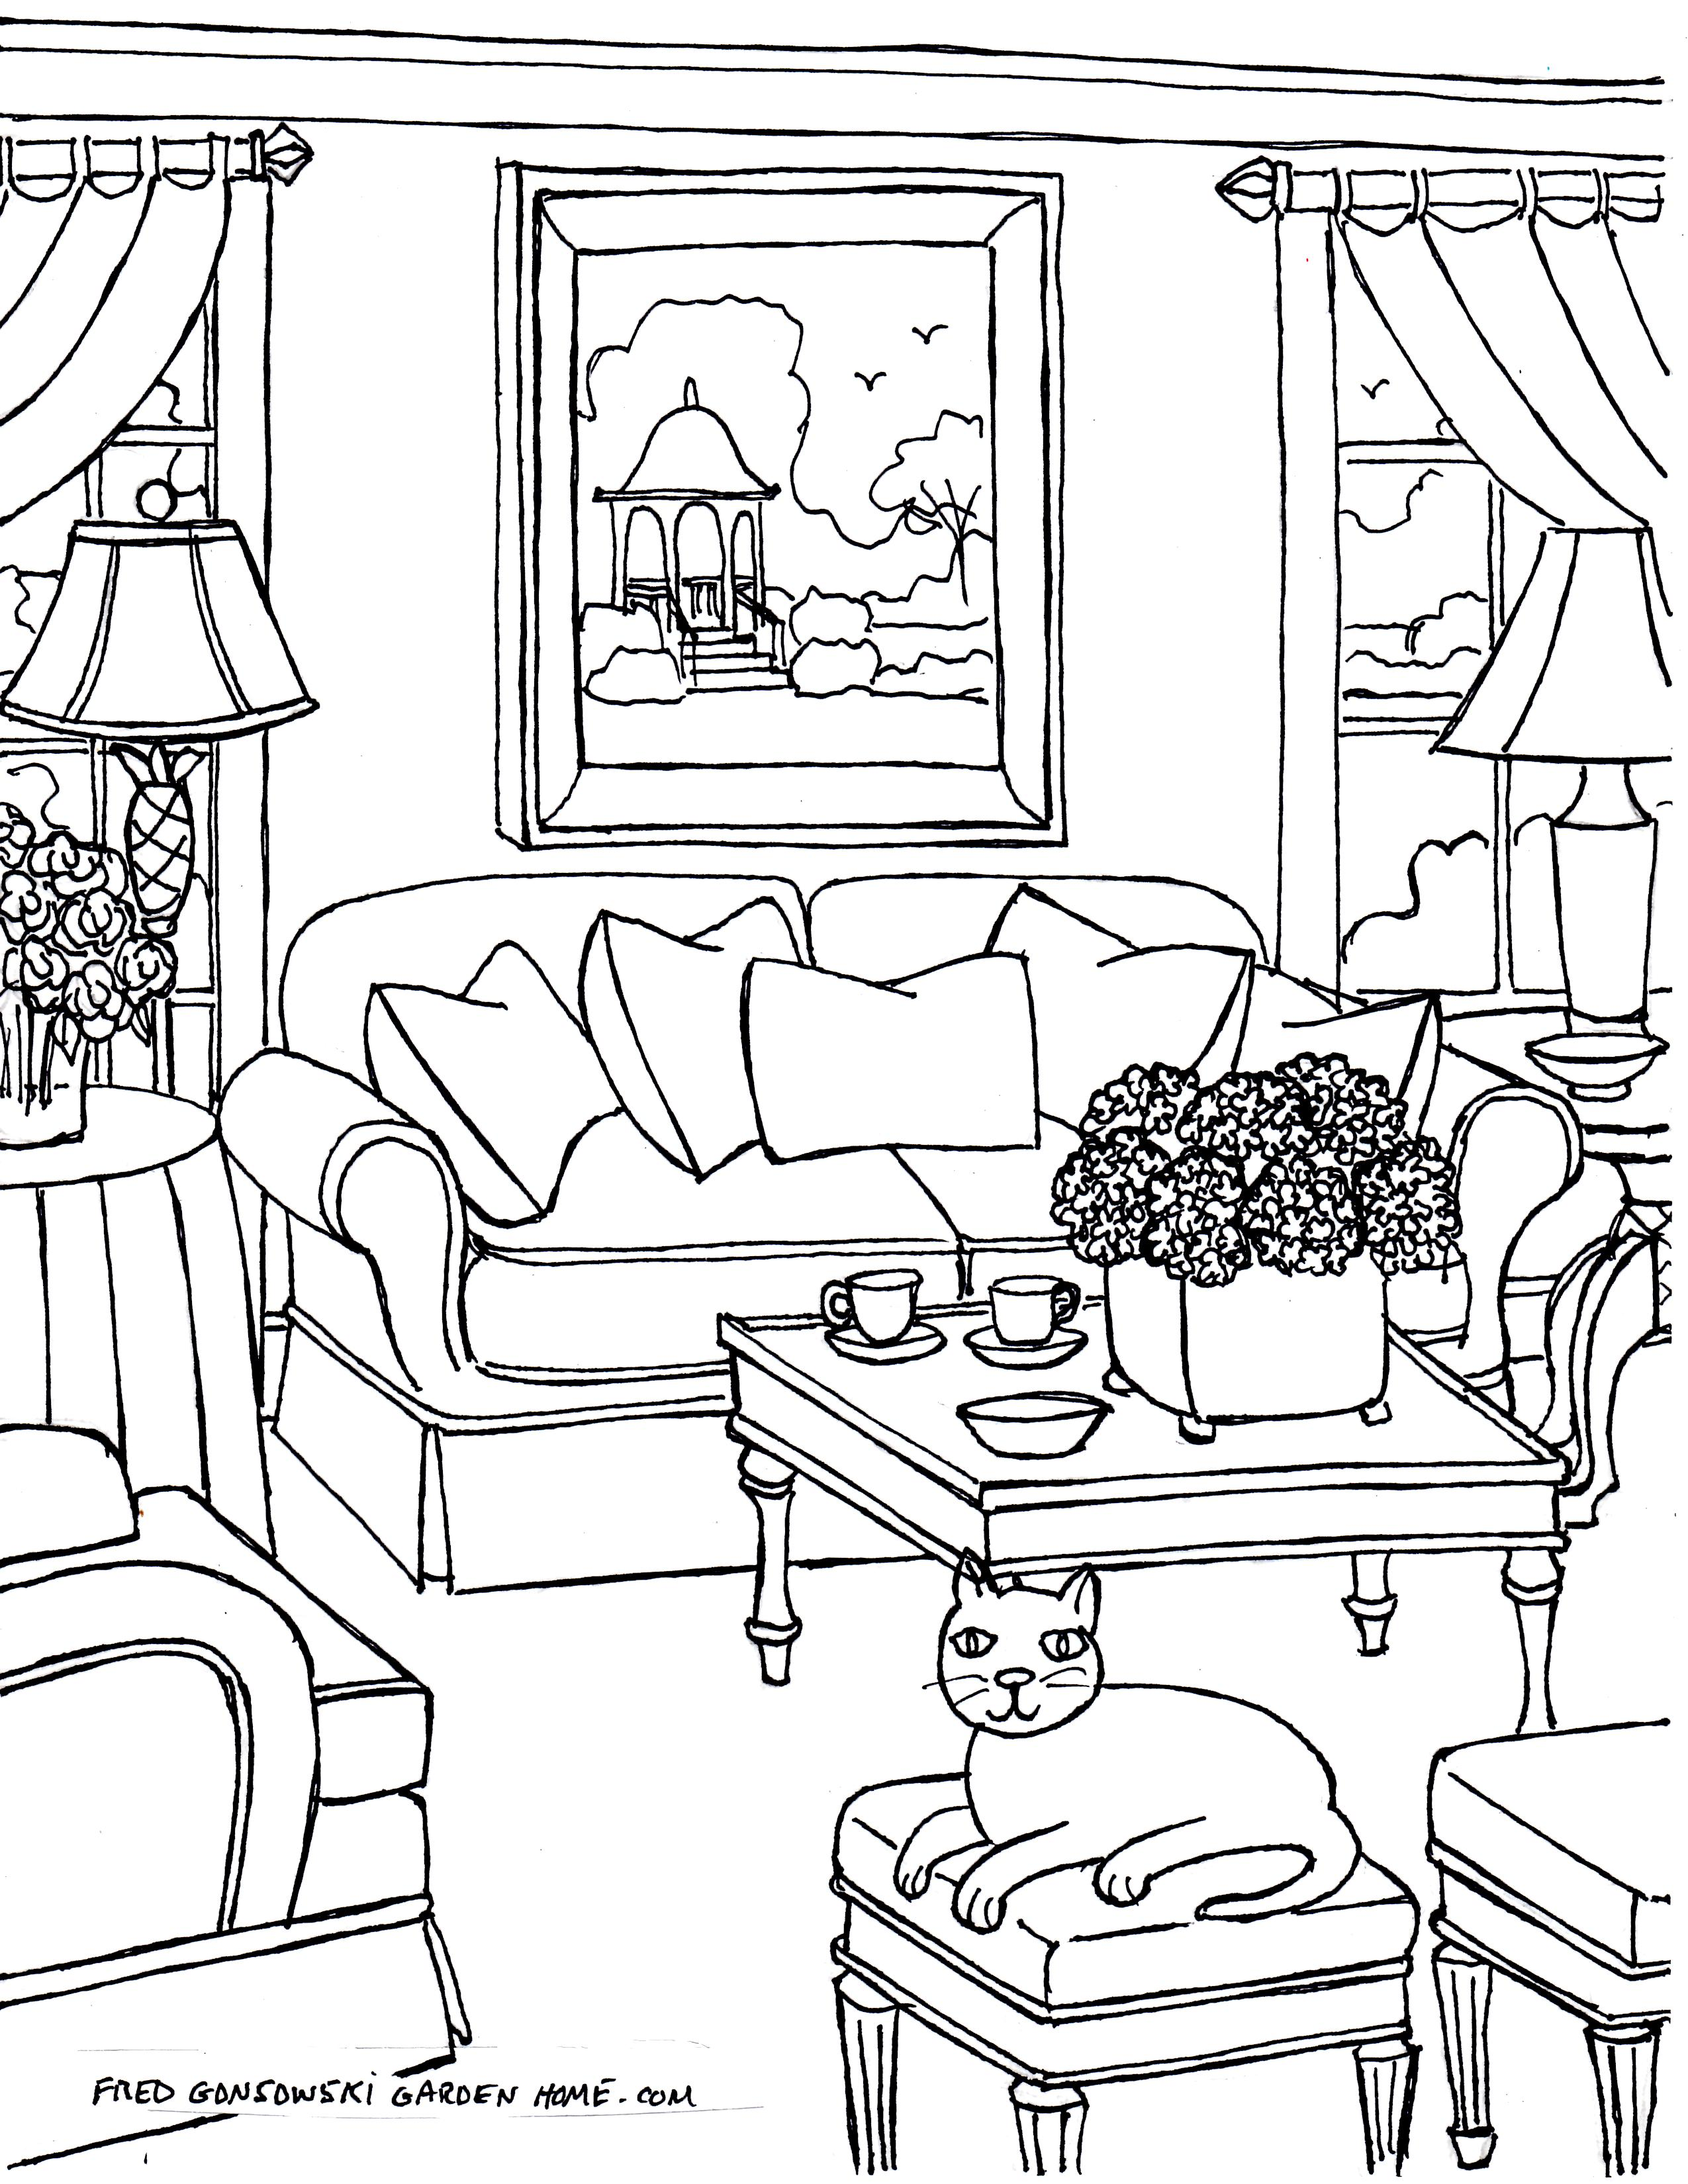 Coloring Pages For Adults… Some Drawings Of Living Rooms For